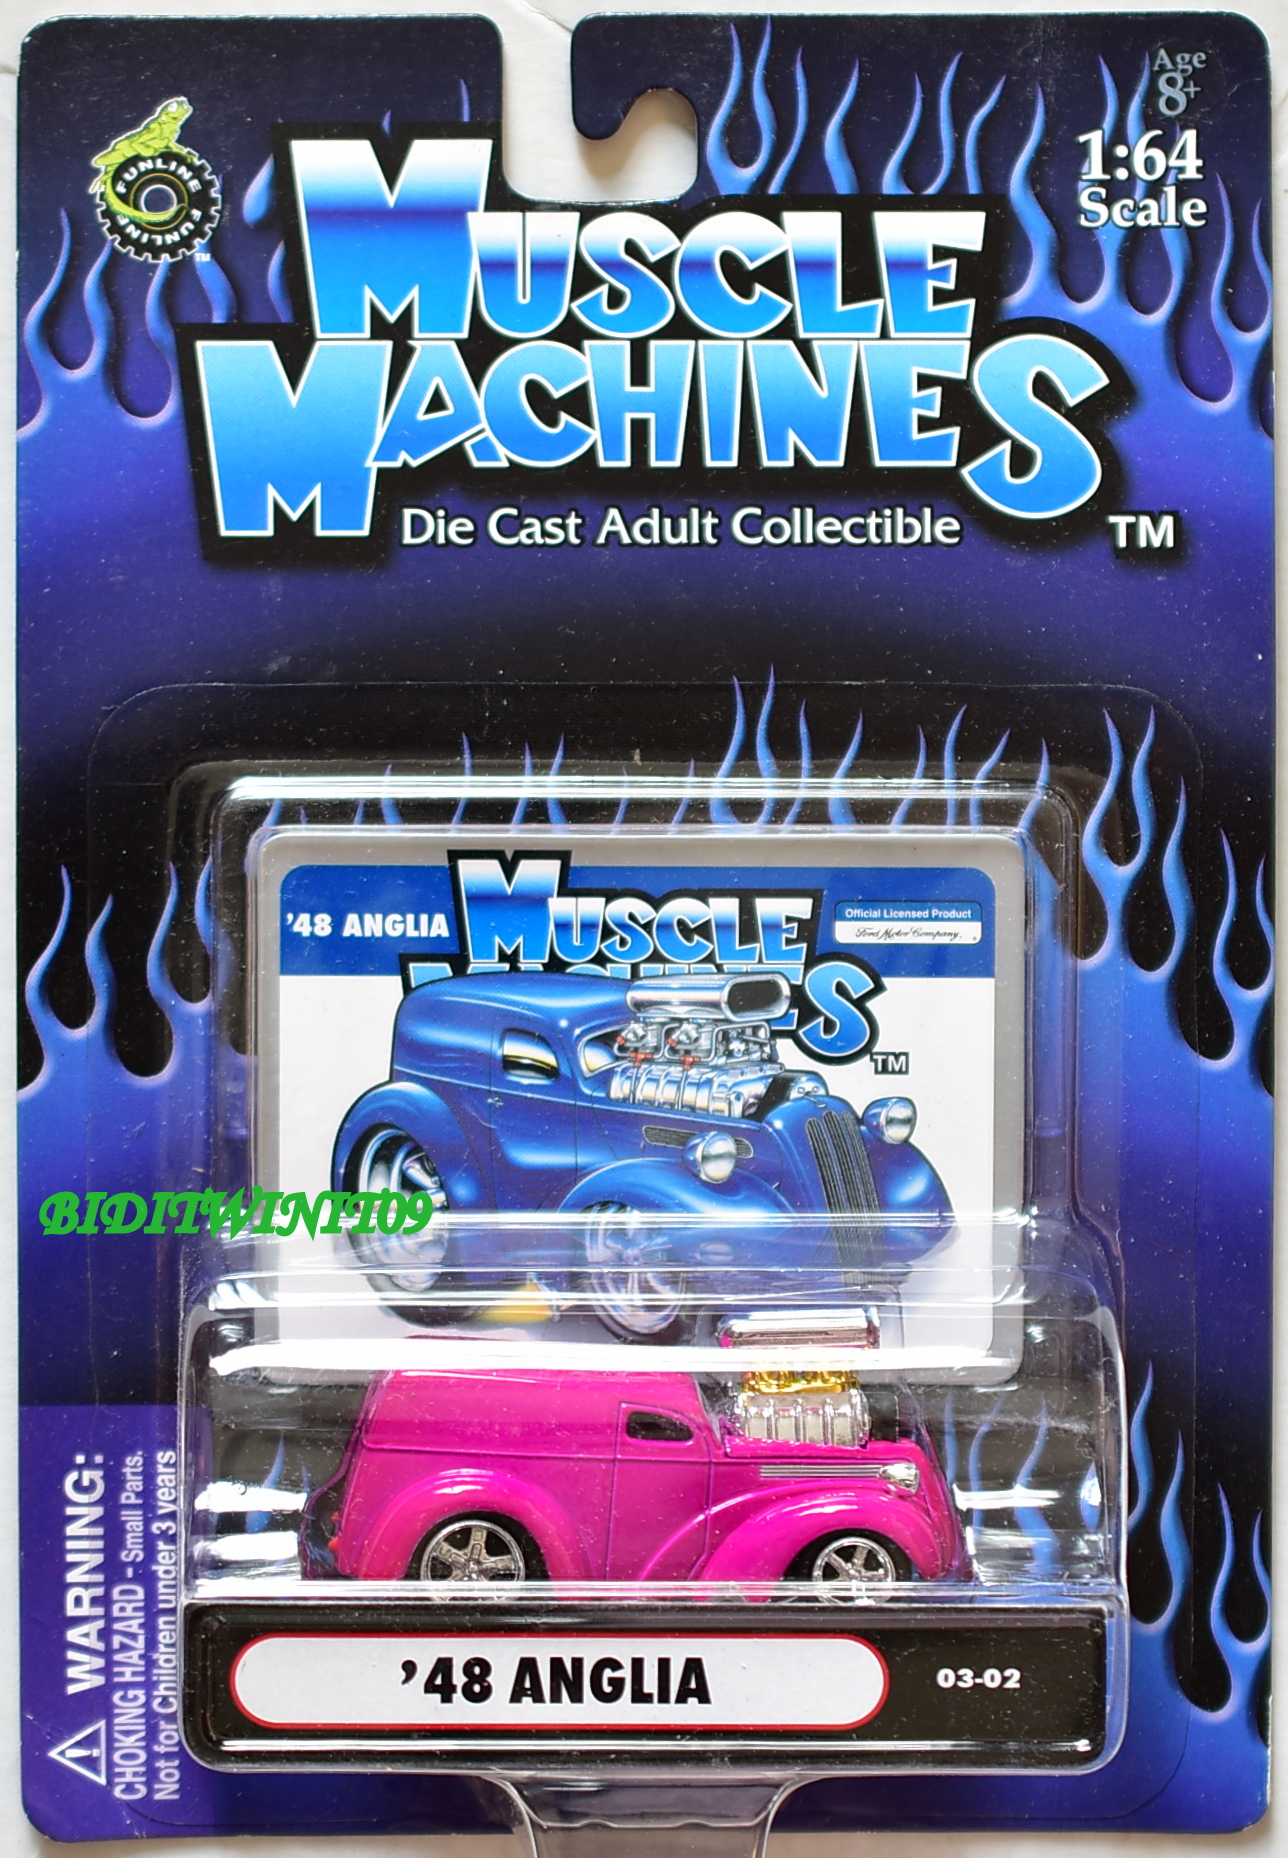 MUSCLE MACHINES '48 ANGLIA 03-02 PINK 1:64 SCALE E+